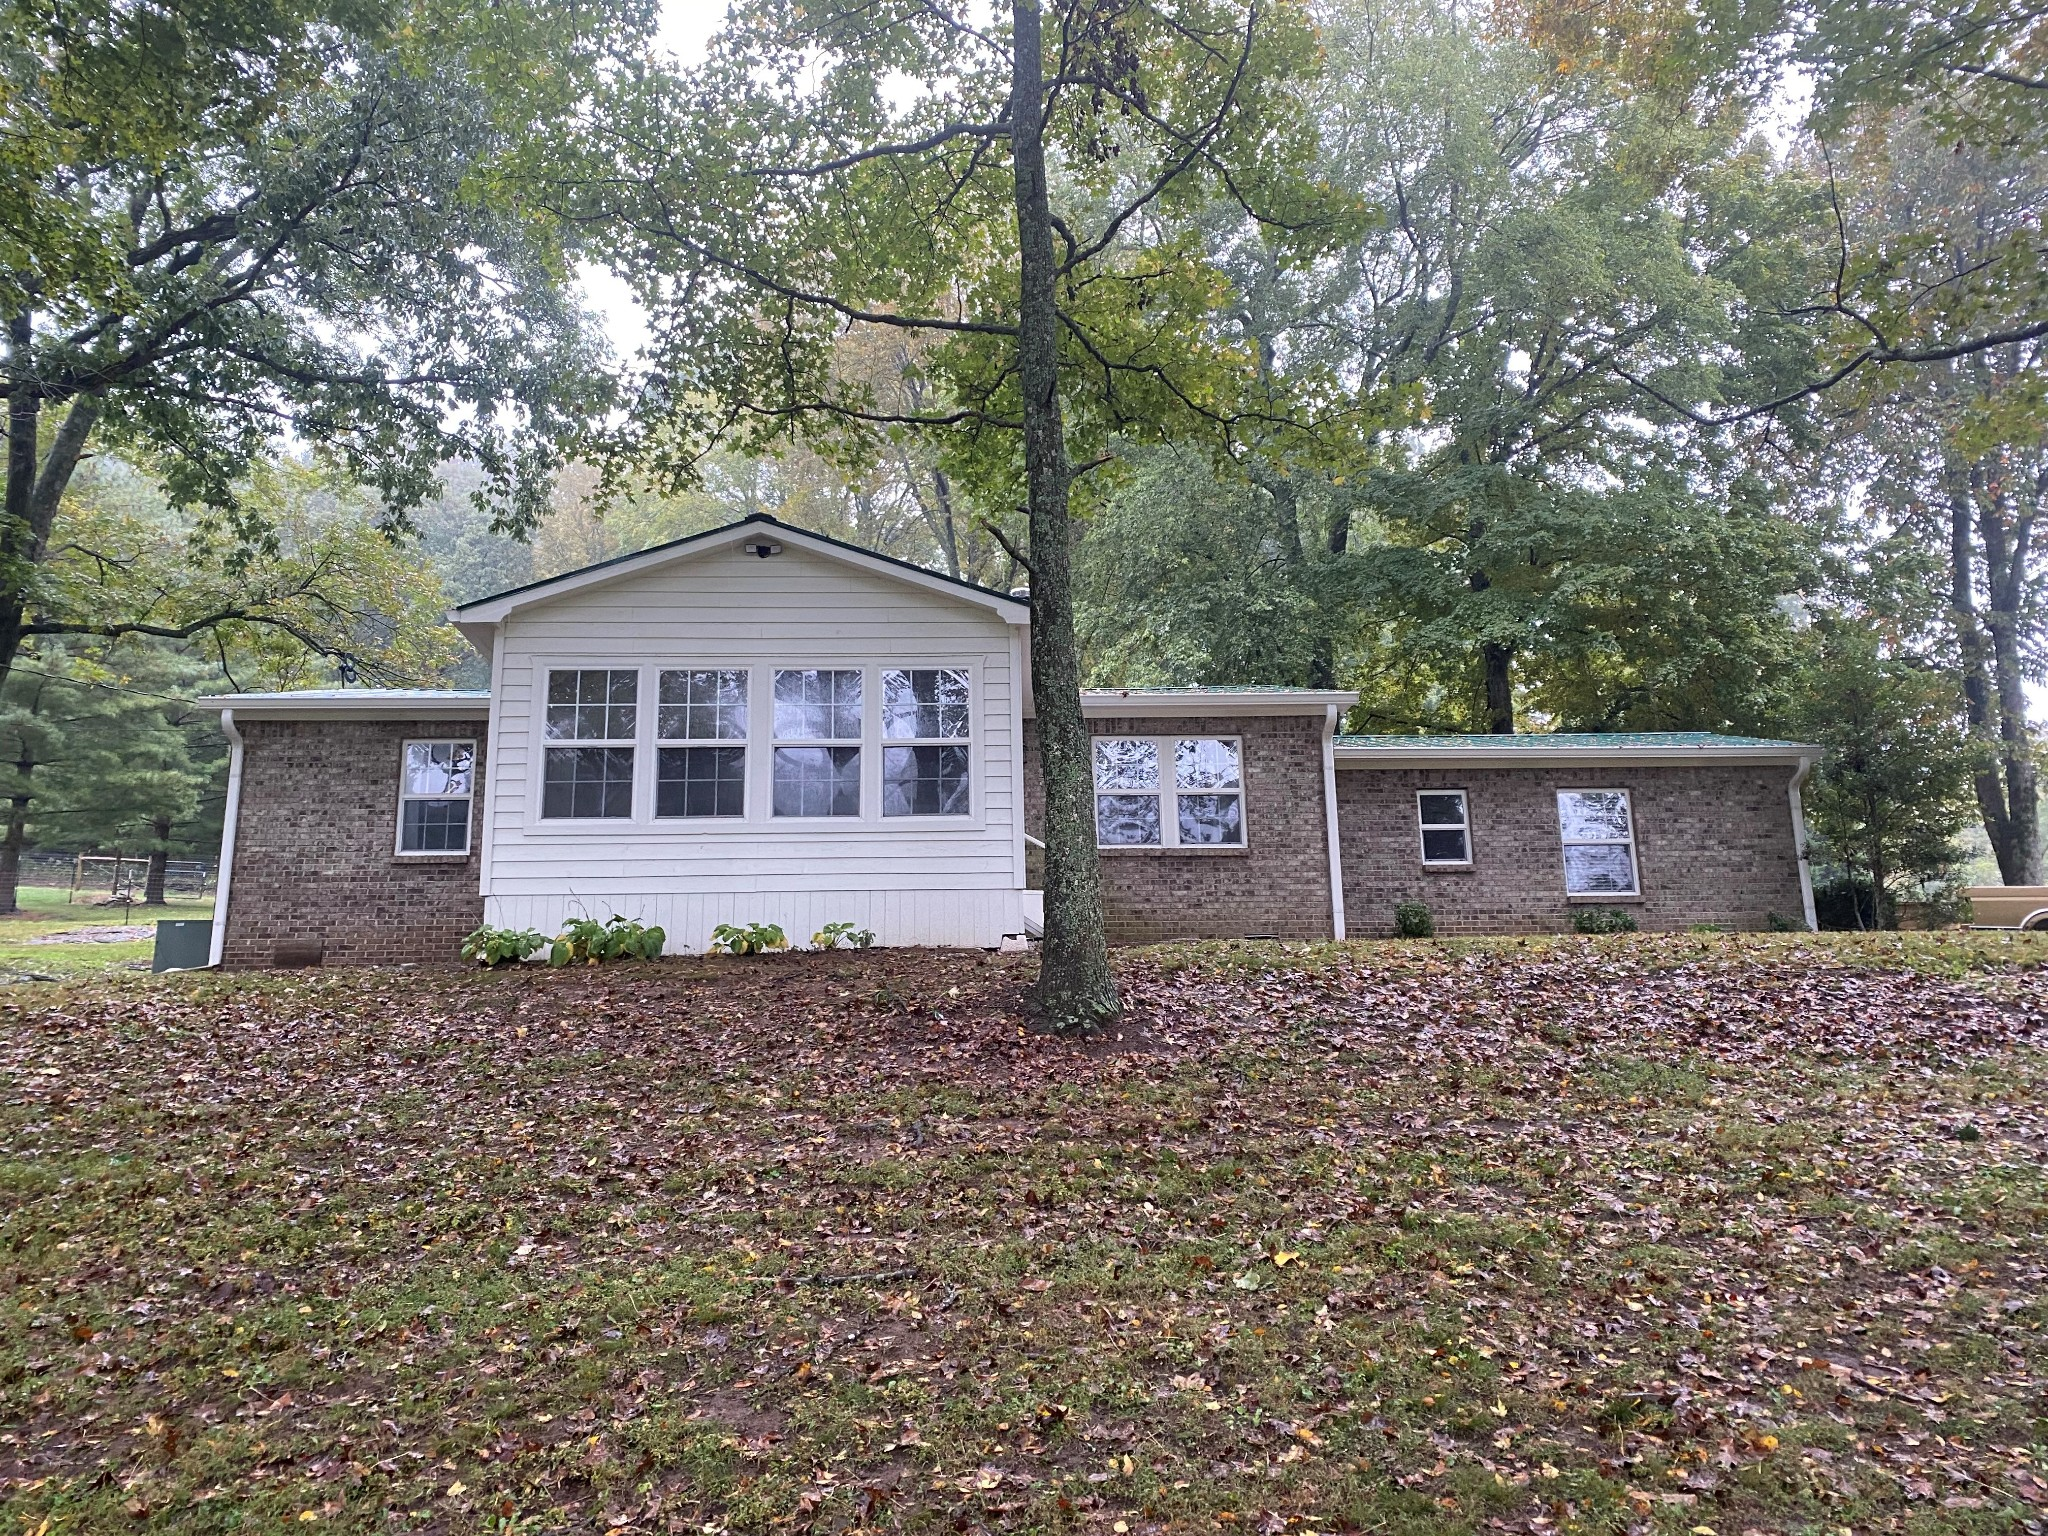 Looking for a Mini Farm, This Ranch home with a guest house will not disappoint!   This home features a 1 bed 1 bath guest house along with the fencing for separation of livestock, stalls, and lean-to structures for plenty of ag opportunities. Nestled in the tallest trees in Williamson County this property is relaxing as well as an opportunity.